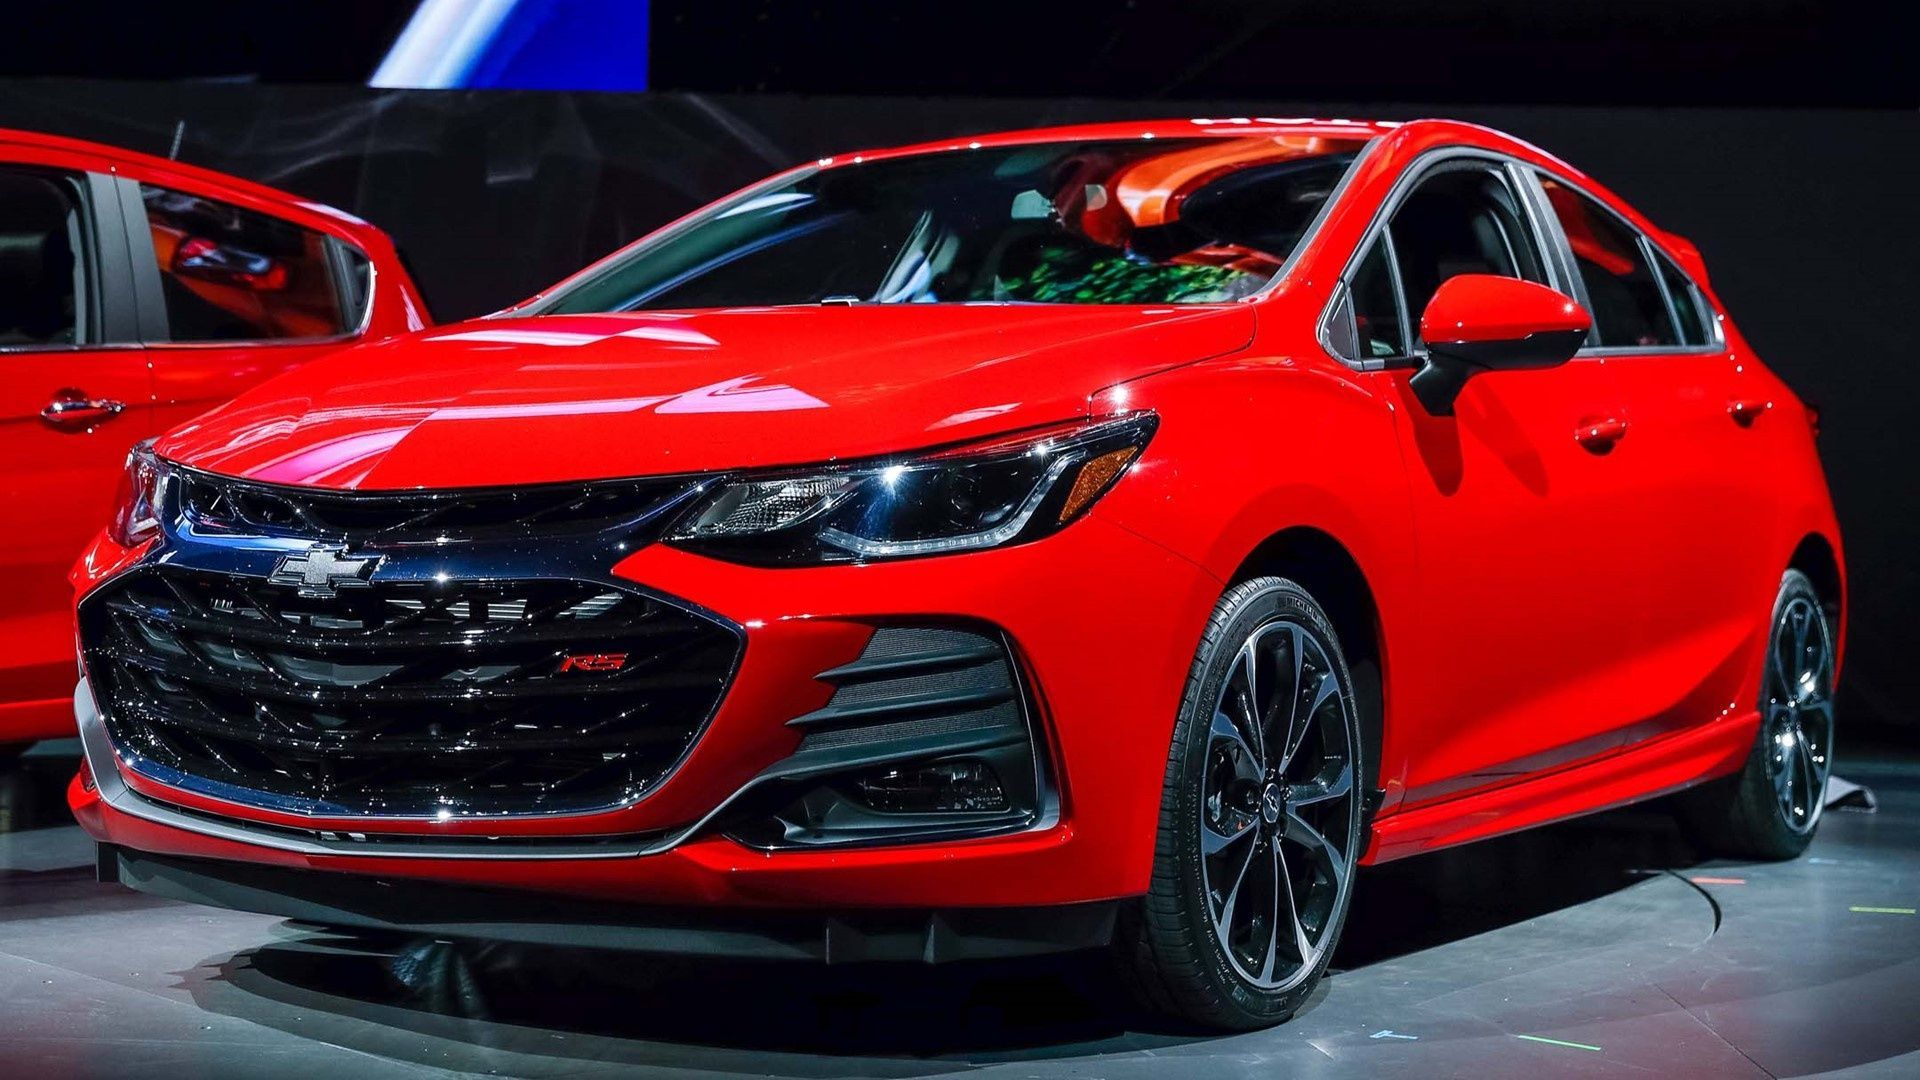 64 The Best 2020 Chevrolet Spark Rumors